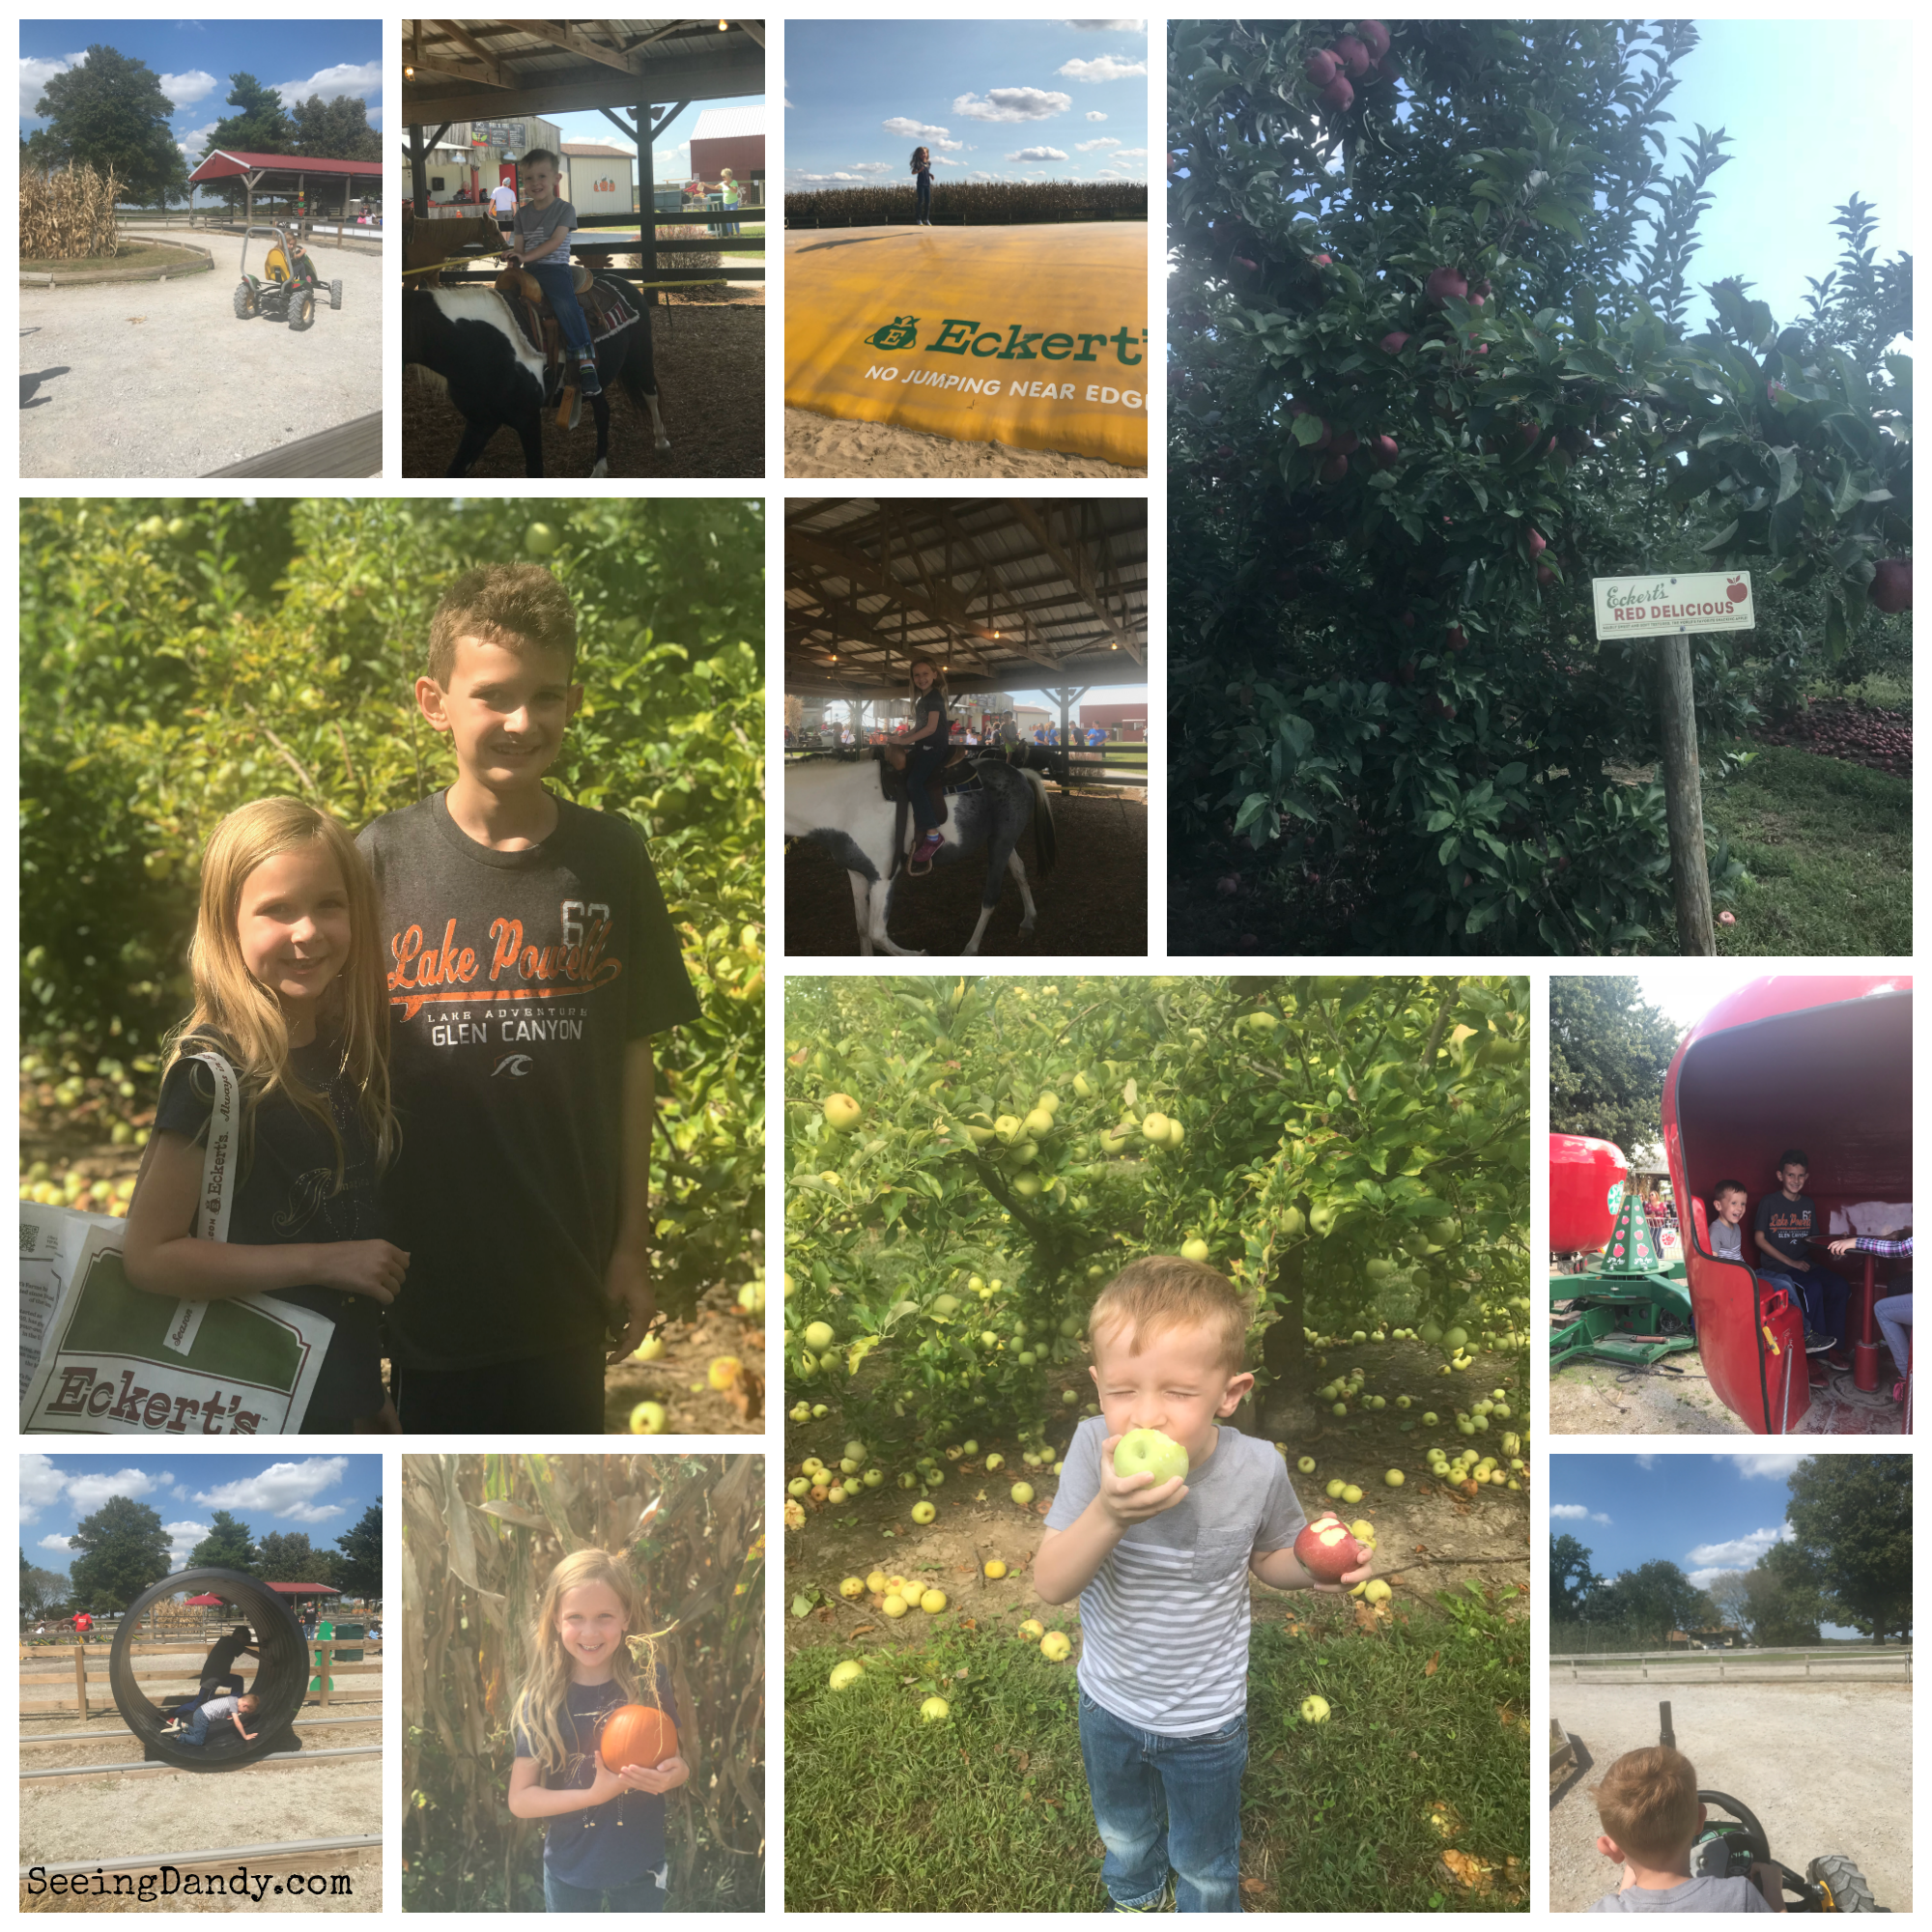 Family fun at Eckerts and picking apples to make foil baked apples.